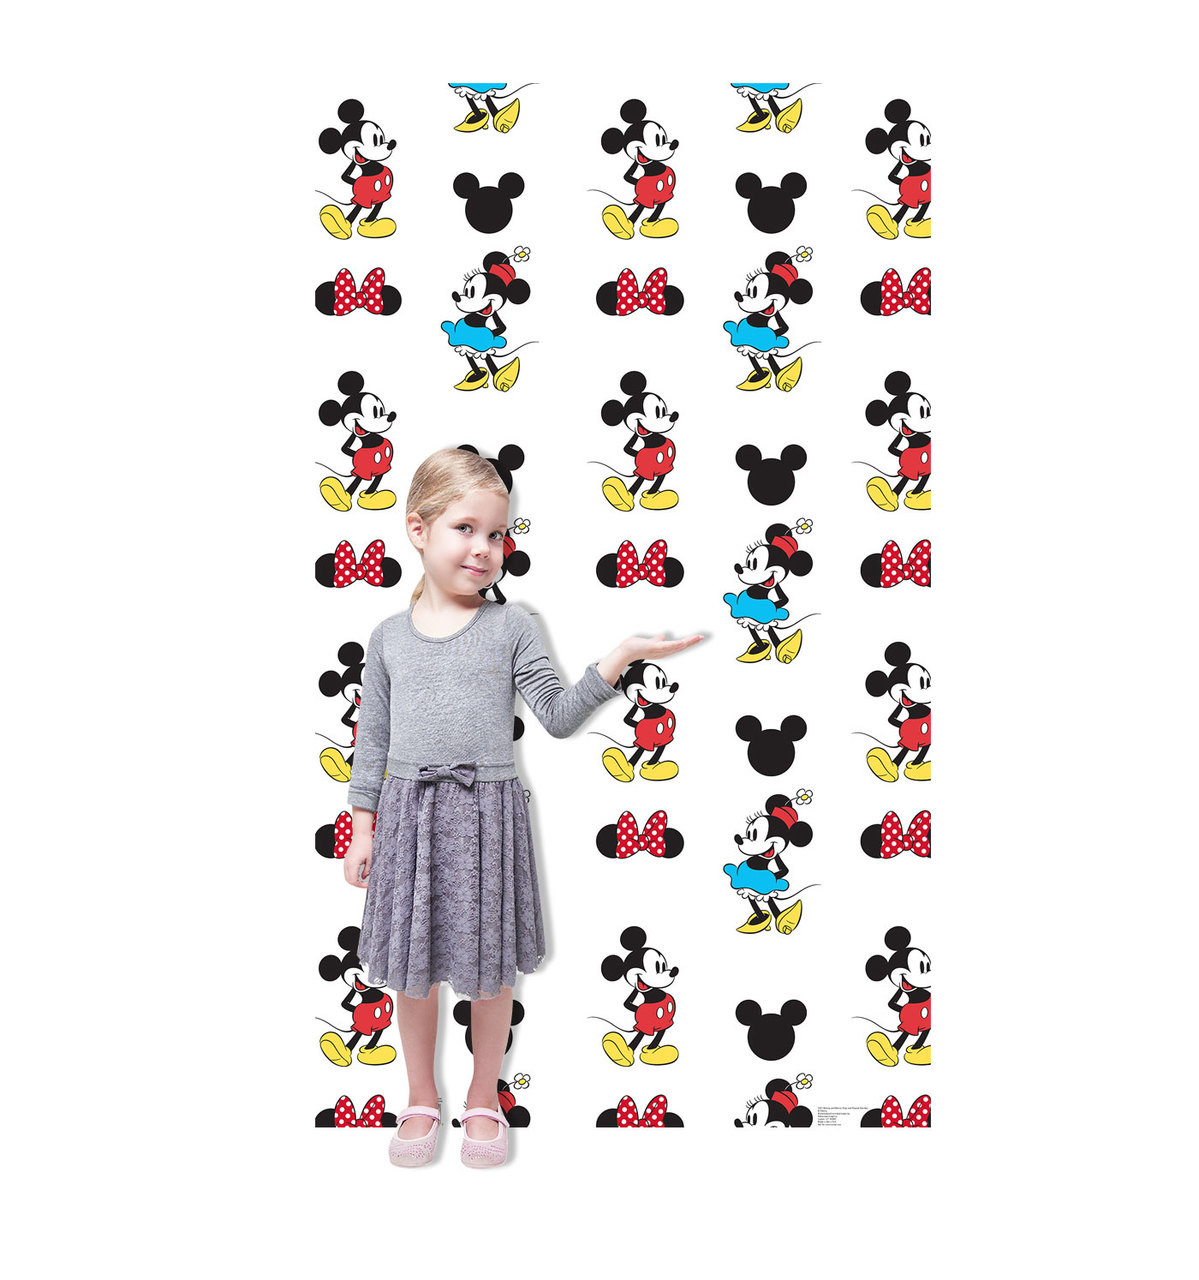 Life-size Mickey and Minnie Step and Repeat Standup Cardboard Standup 3